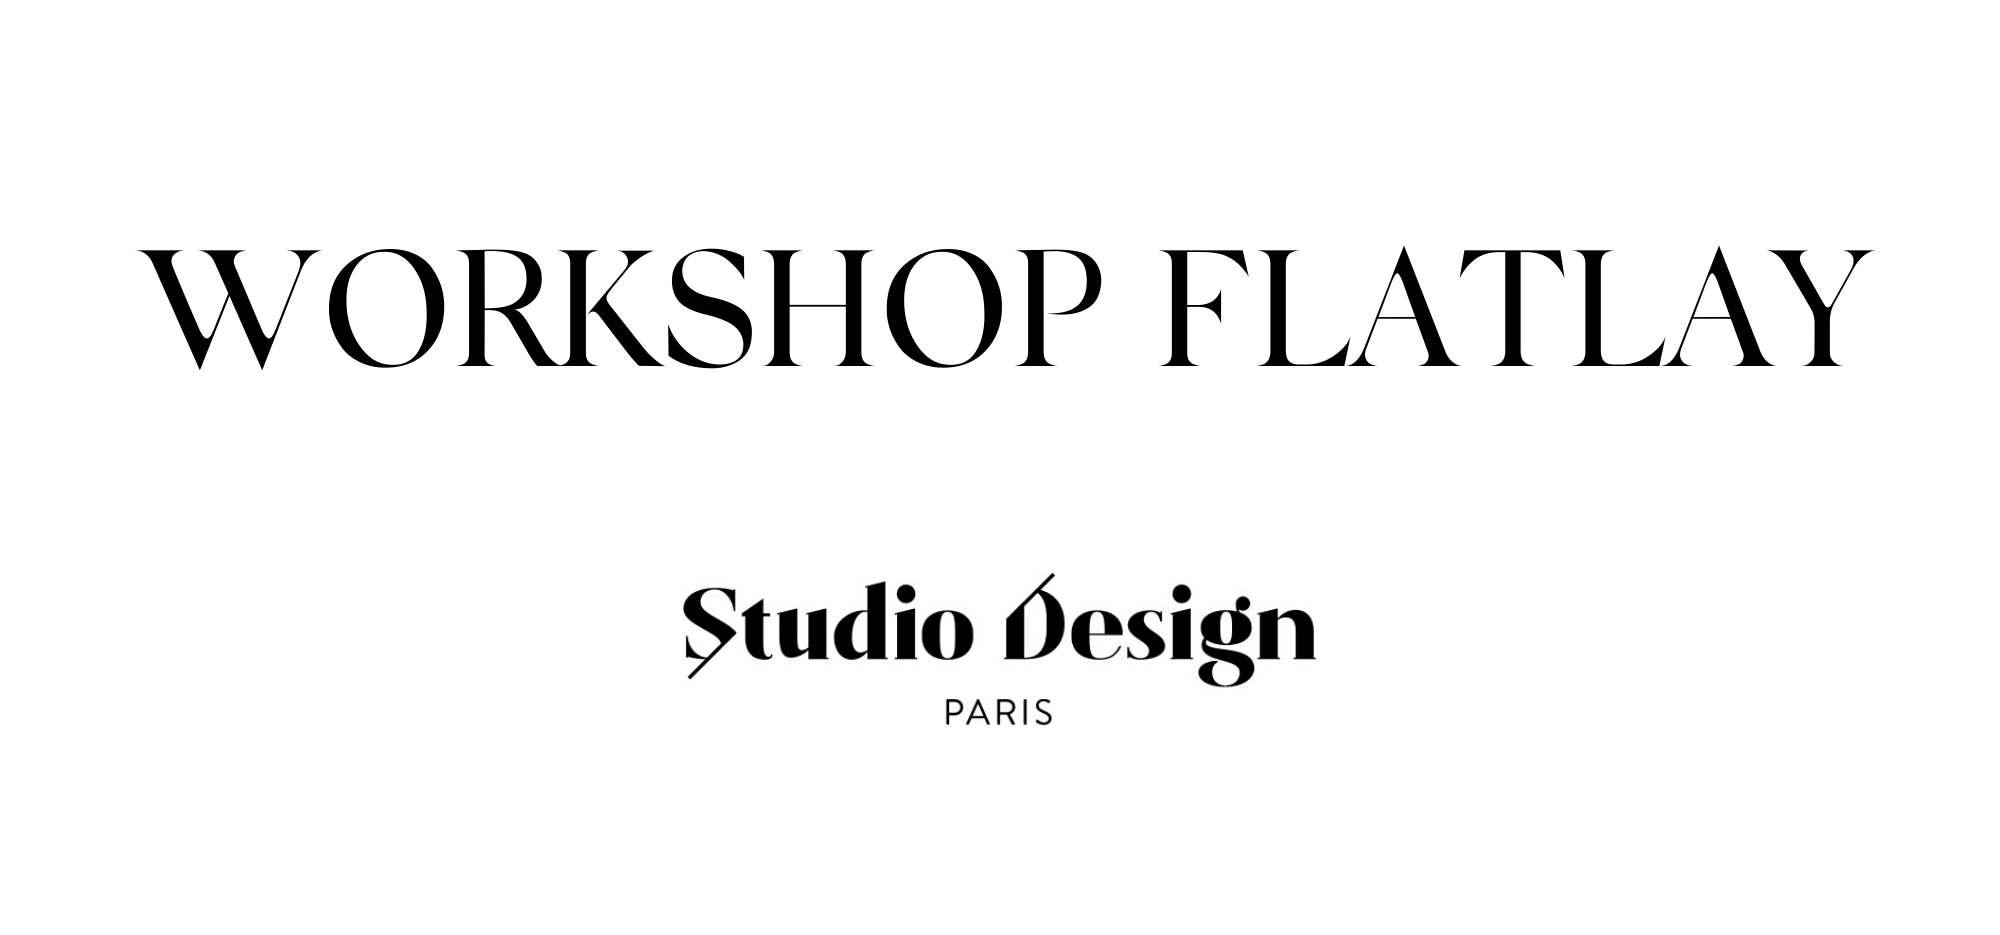 Workshop-wedding-designer-mariage-paris-details